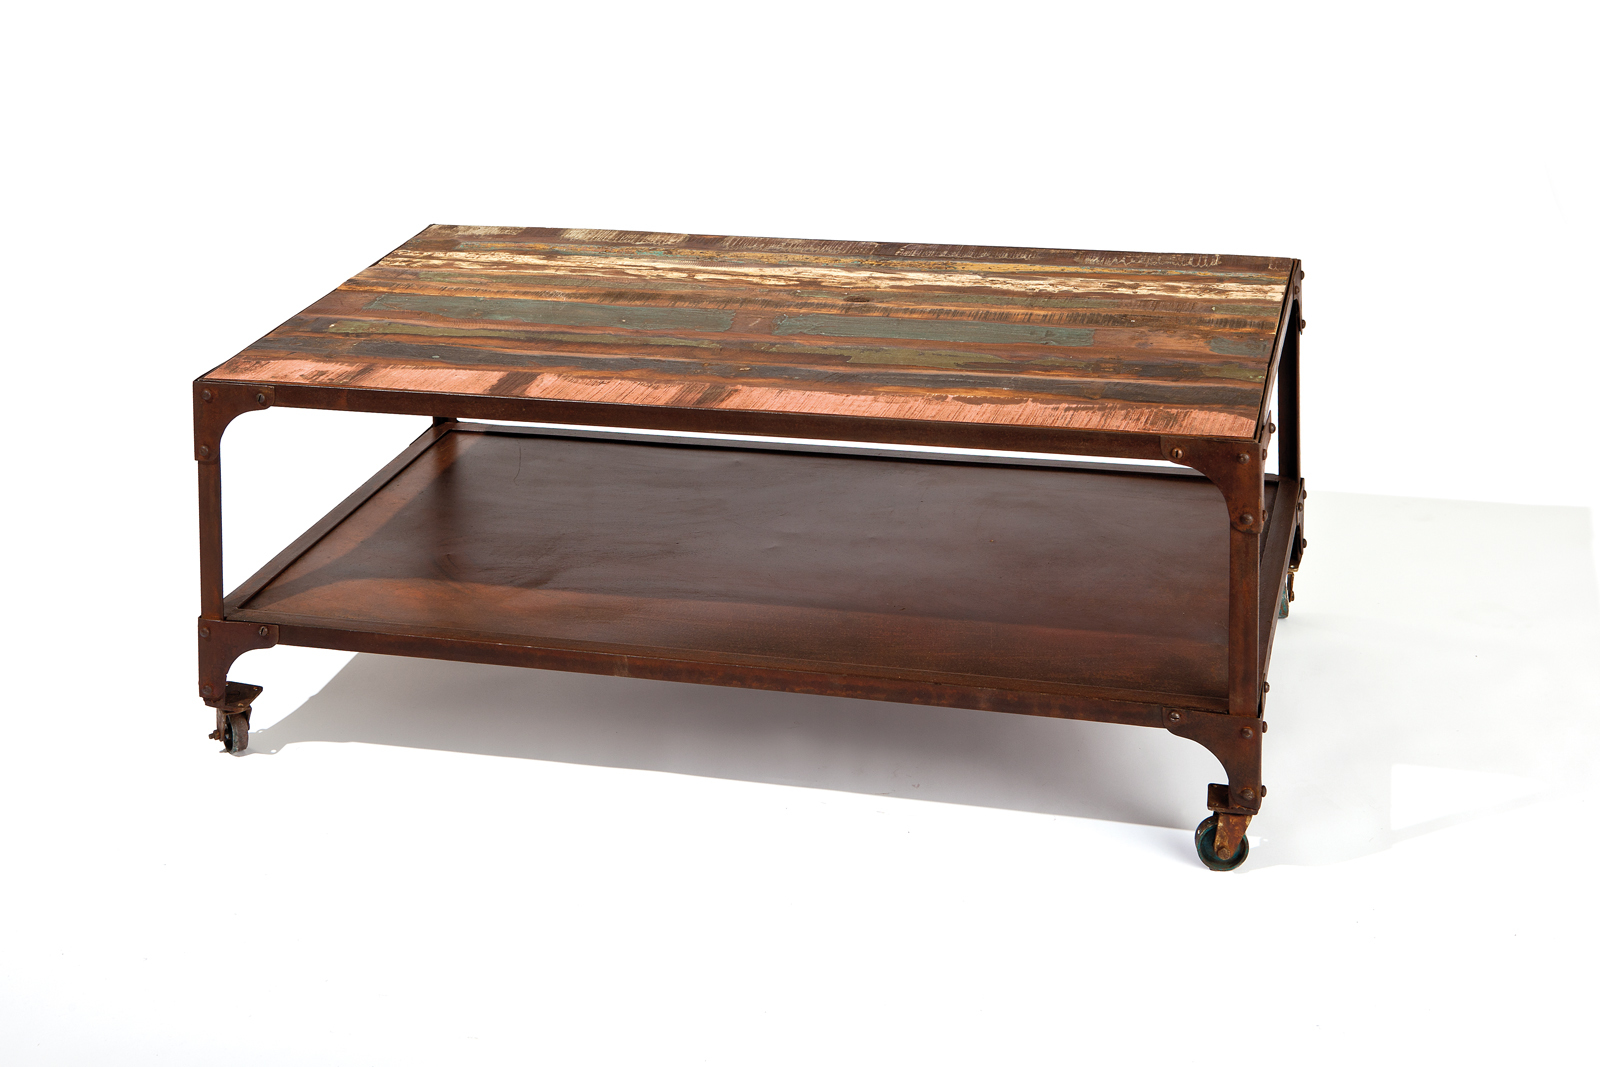 Table basse bois recycle - Table basse multicolore ...